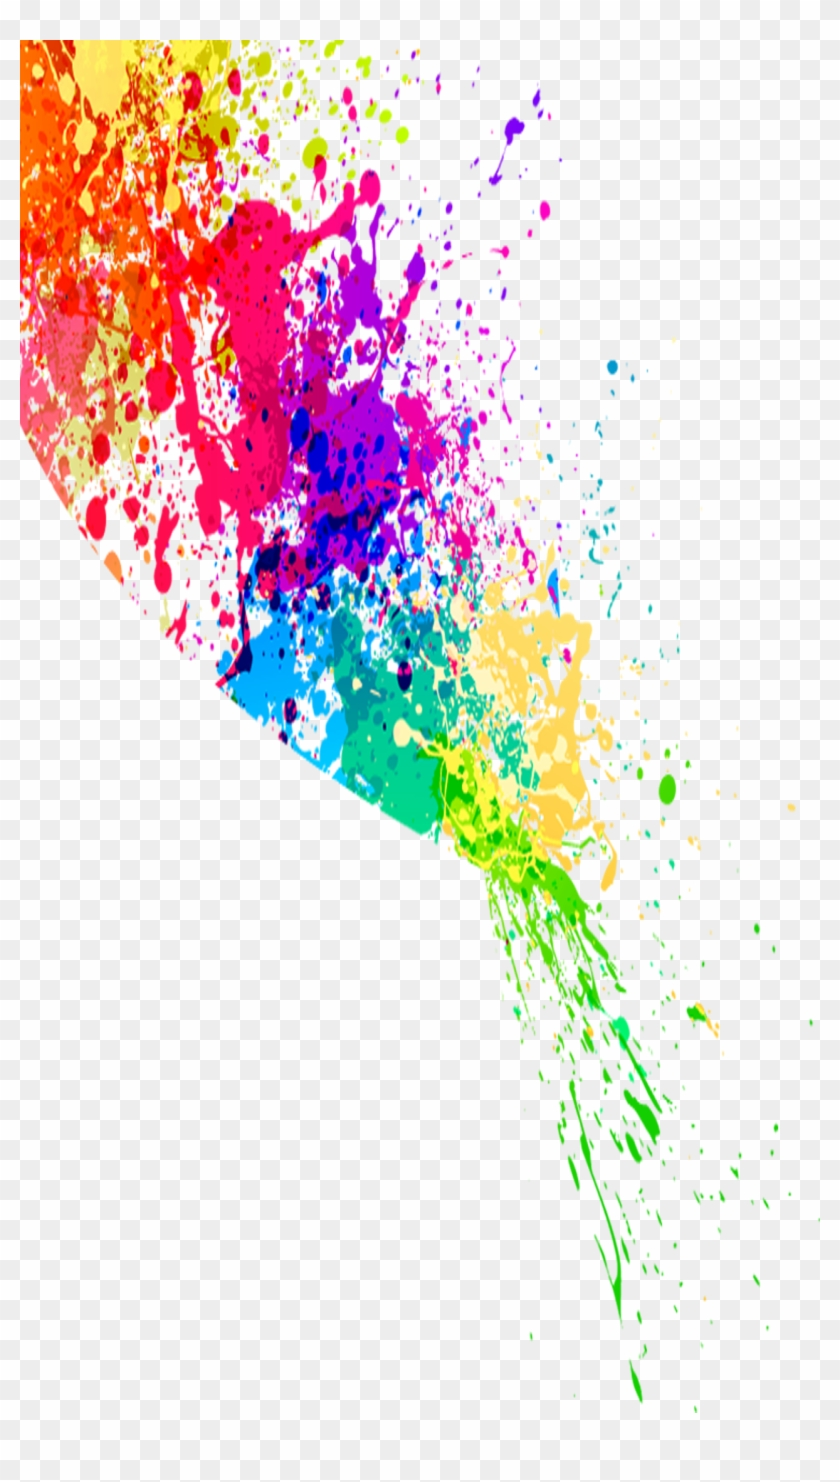 Download Free High Quality Paint Splatter Png Transparent Transparent Color Splash Png Clipart 139242 Pikpng Search icons with this style. transparent color splash png clipart